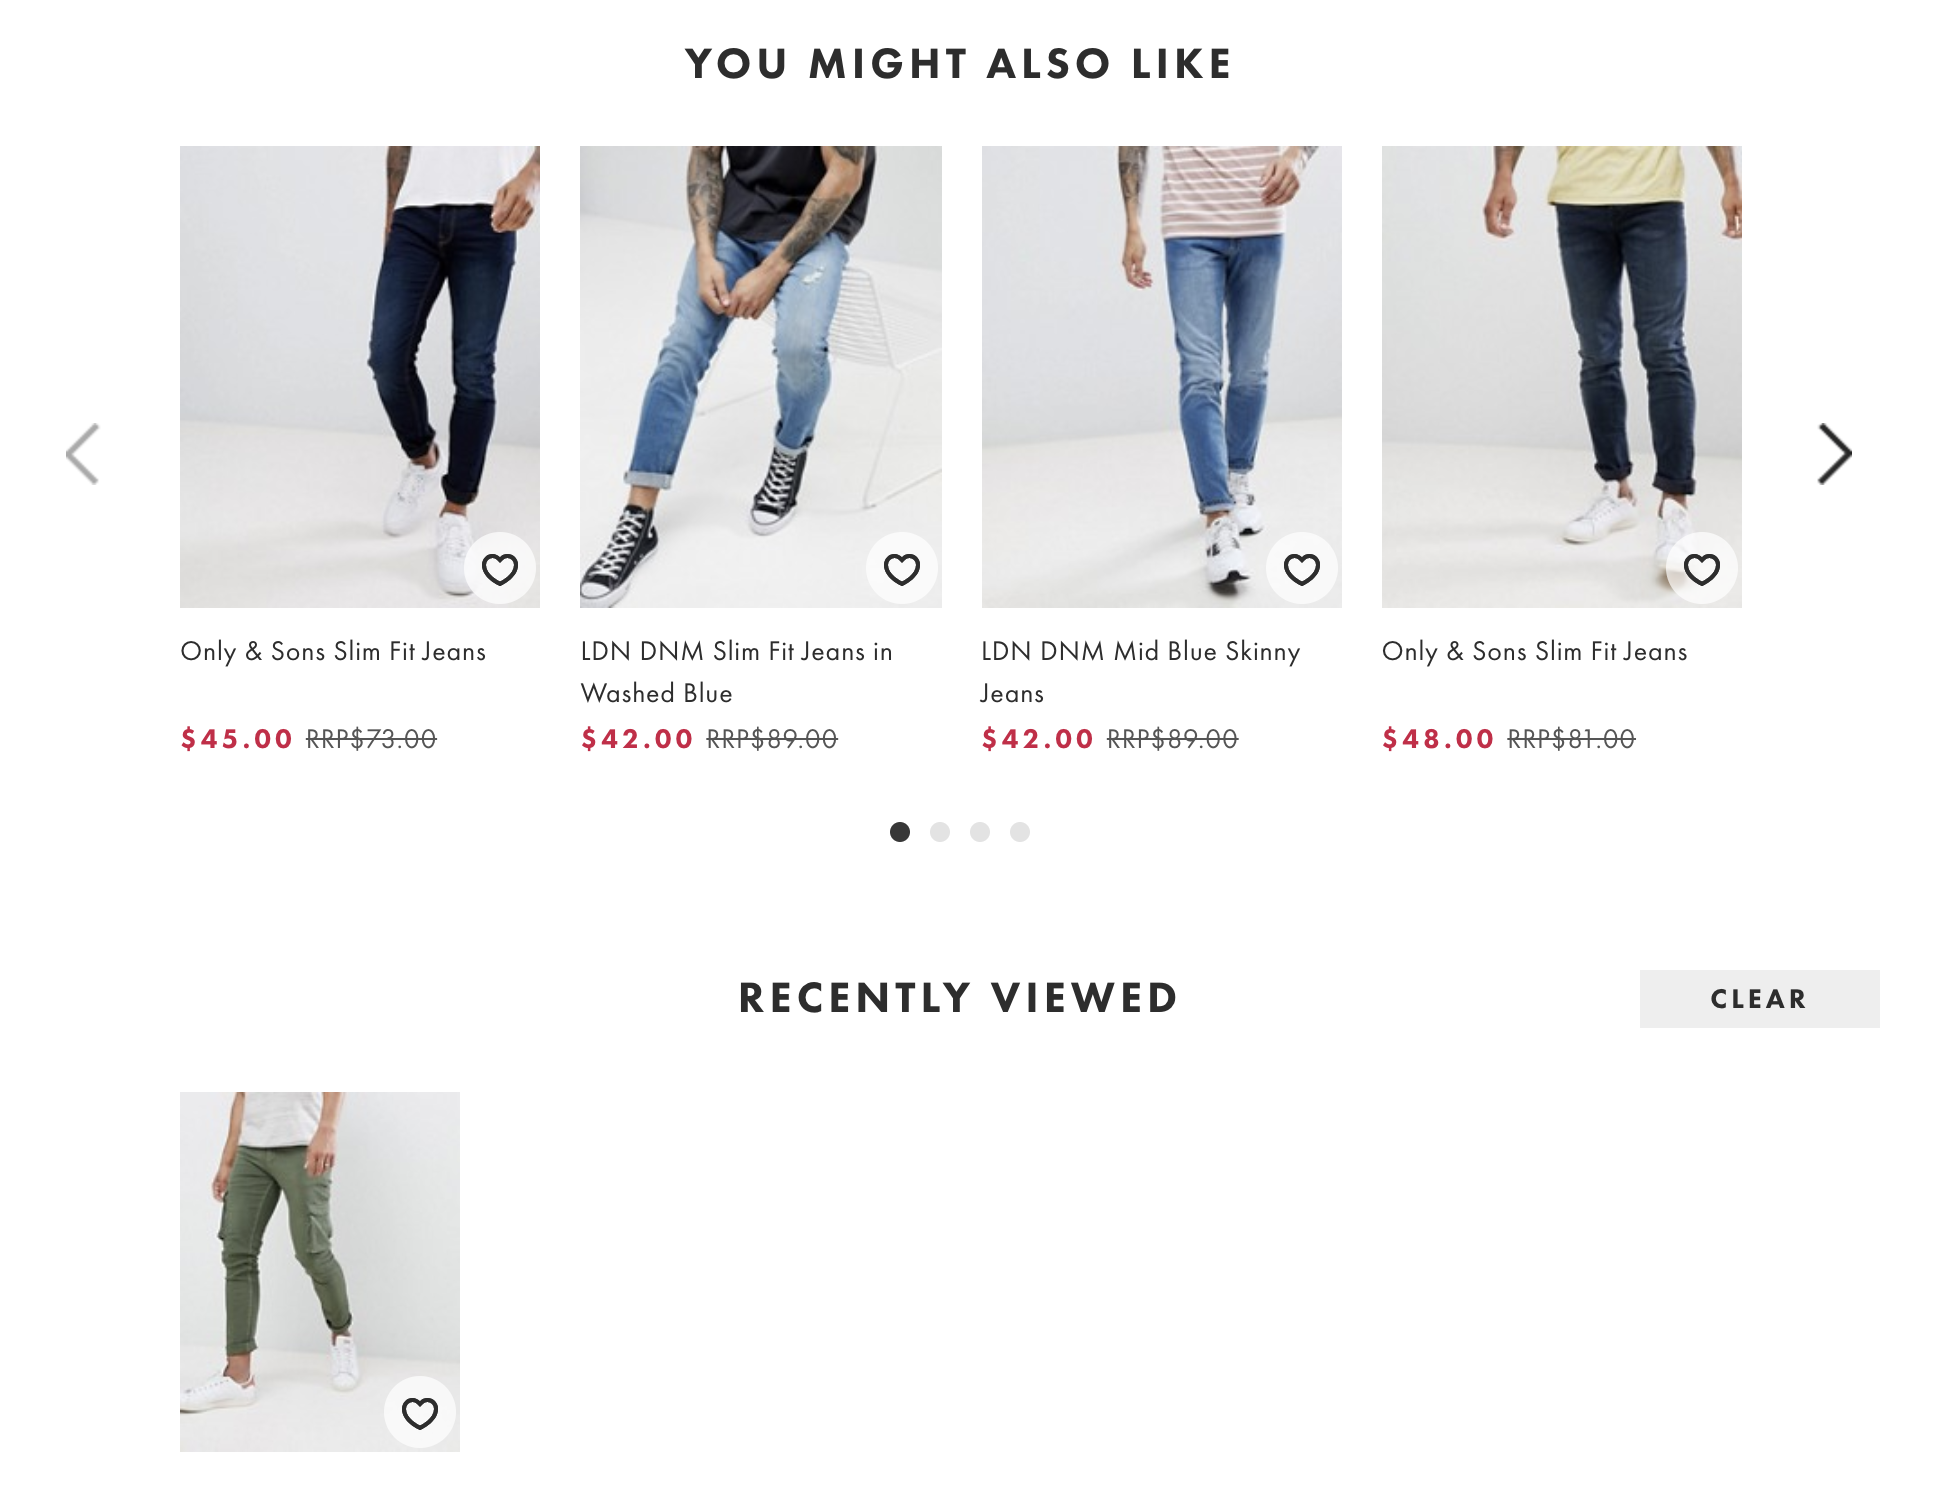 asos cross selling product recommendations